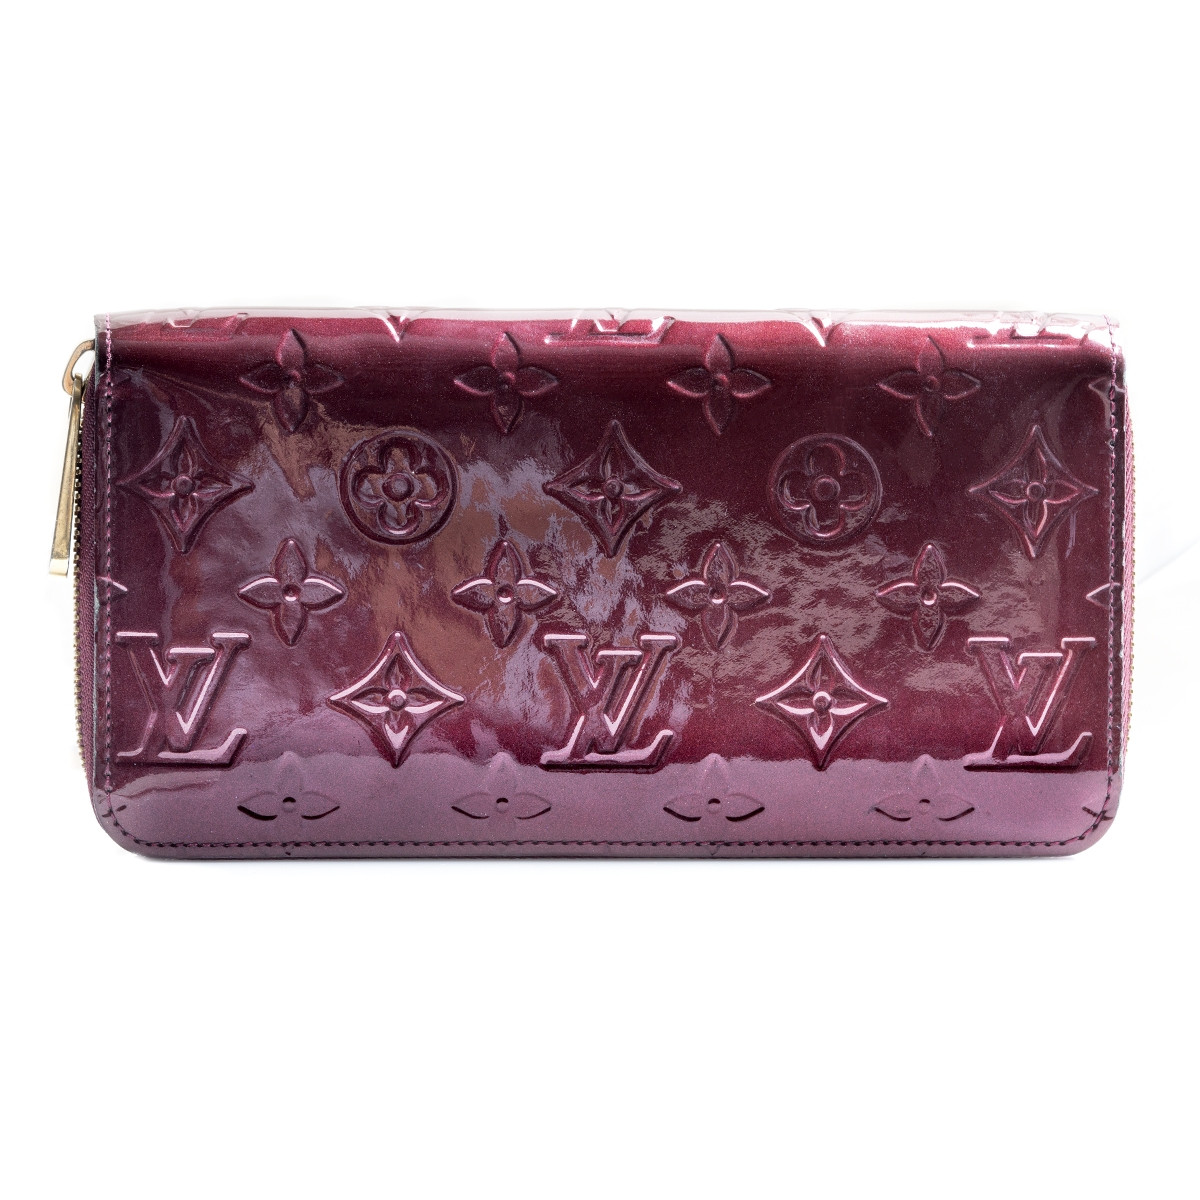 Vintage Louis Vuitton Vernis Zippy Wallet